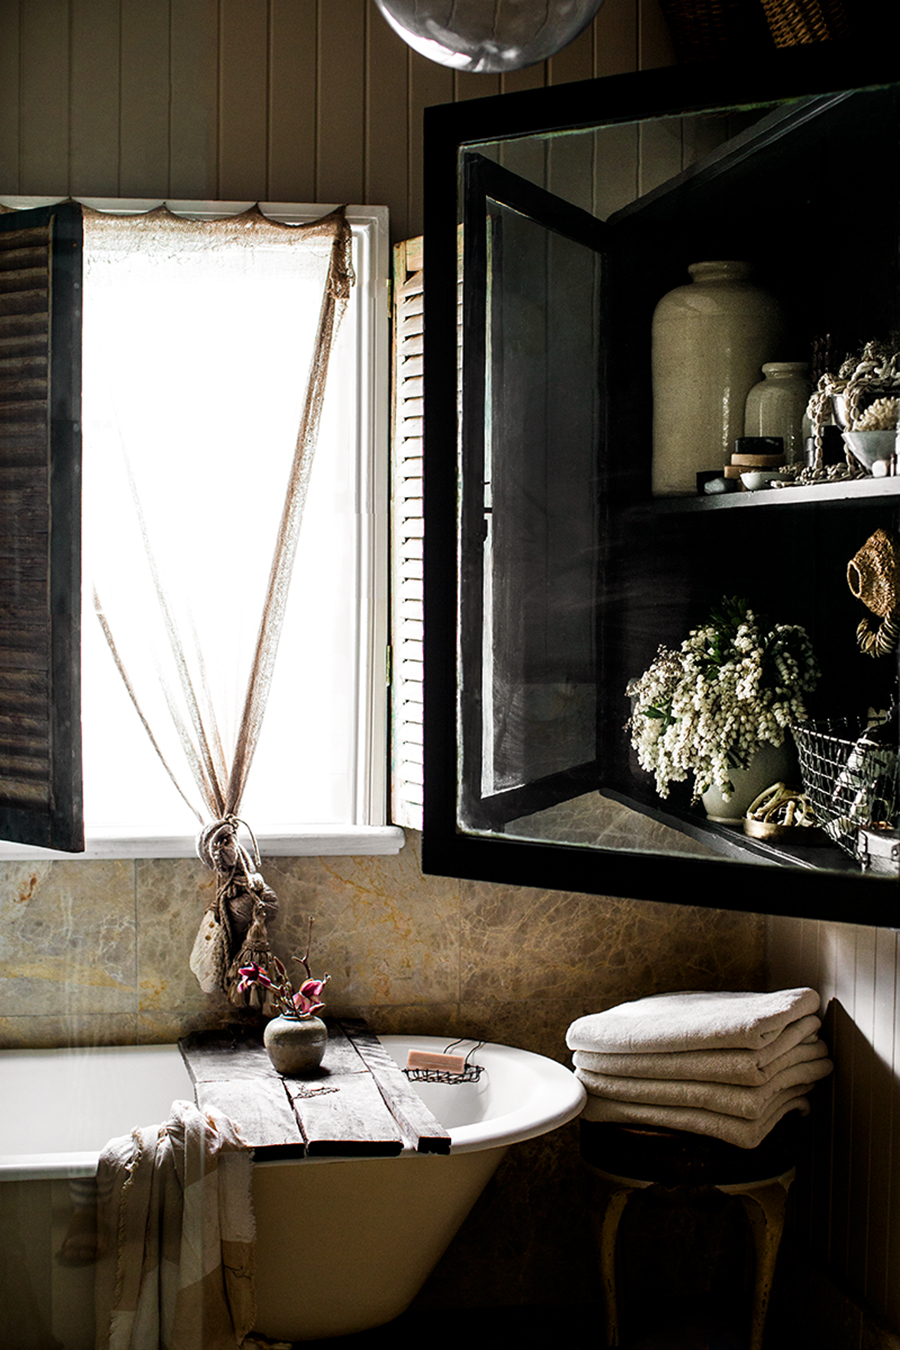 Rustic Bohemian Interior Design Style in a Bathroom by Kara Rosenlund with clawfoot tub and vintage treasures. #bathroom #boho #rustic #vintage #bohemian